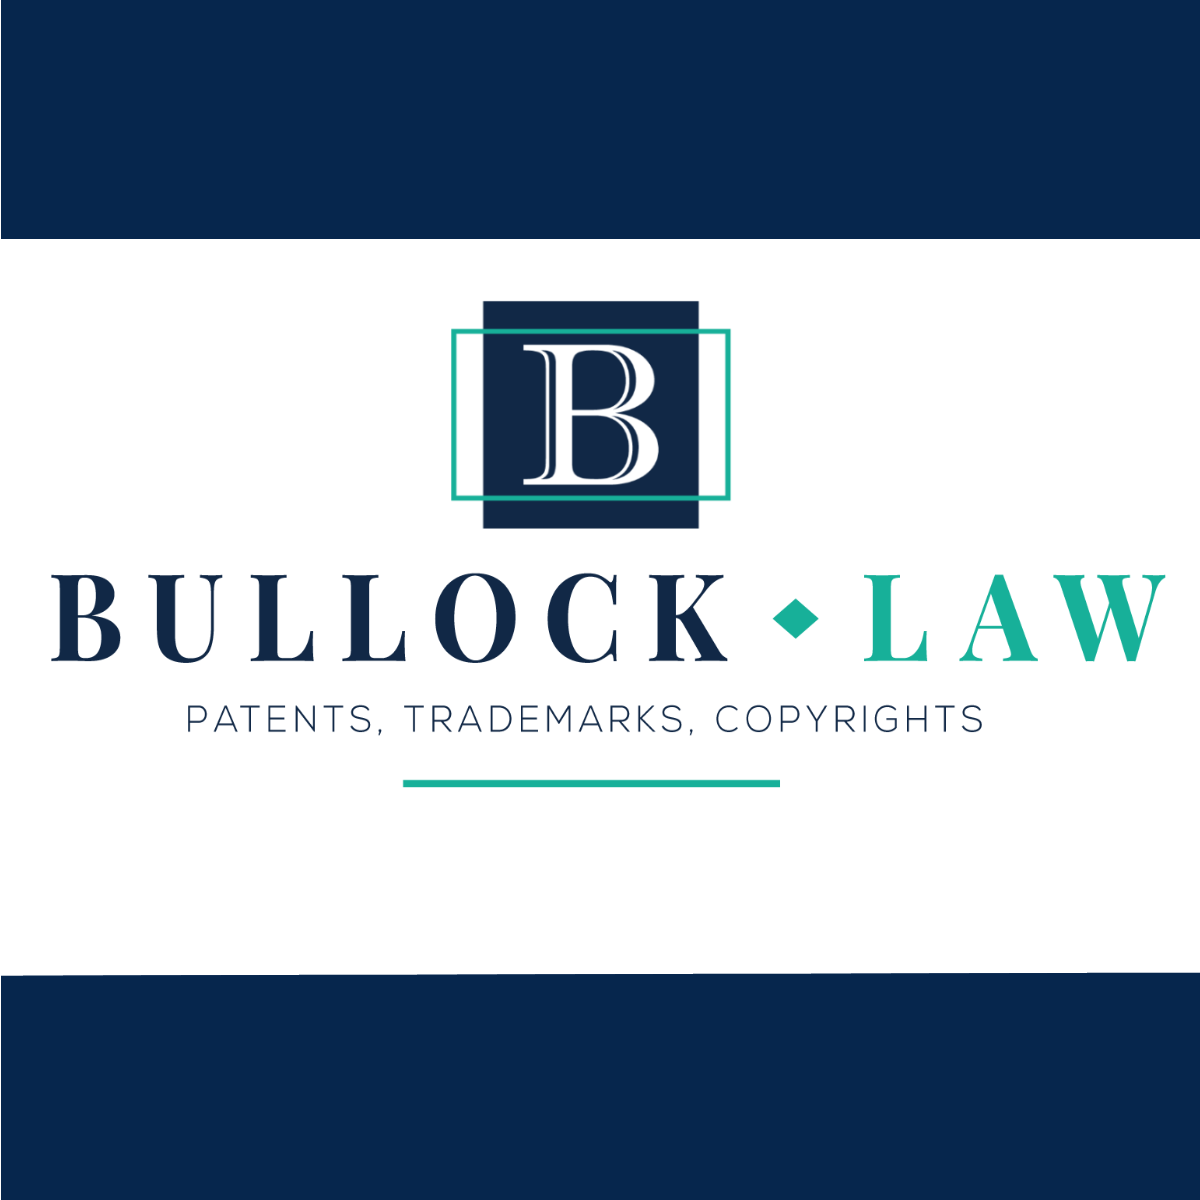 Bullock Law is an intellectual property law firm concentrating on patent protection for businesses, engineers and inventors.